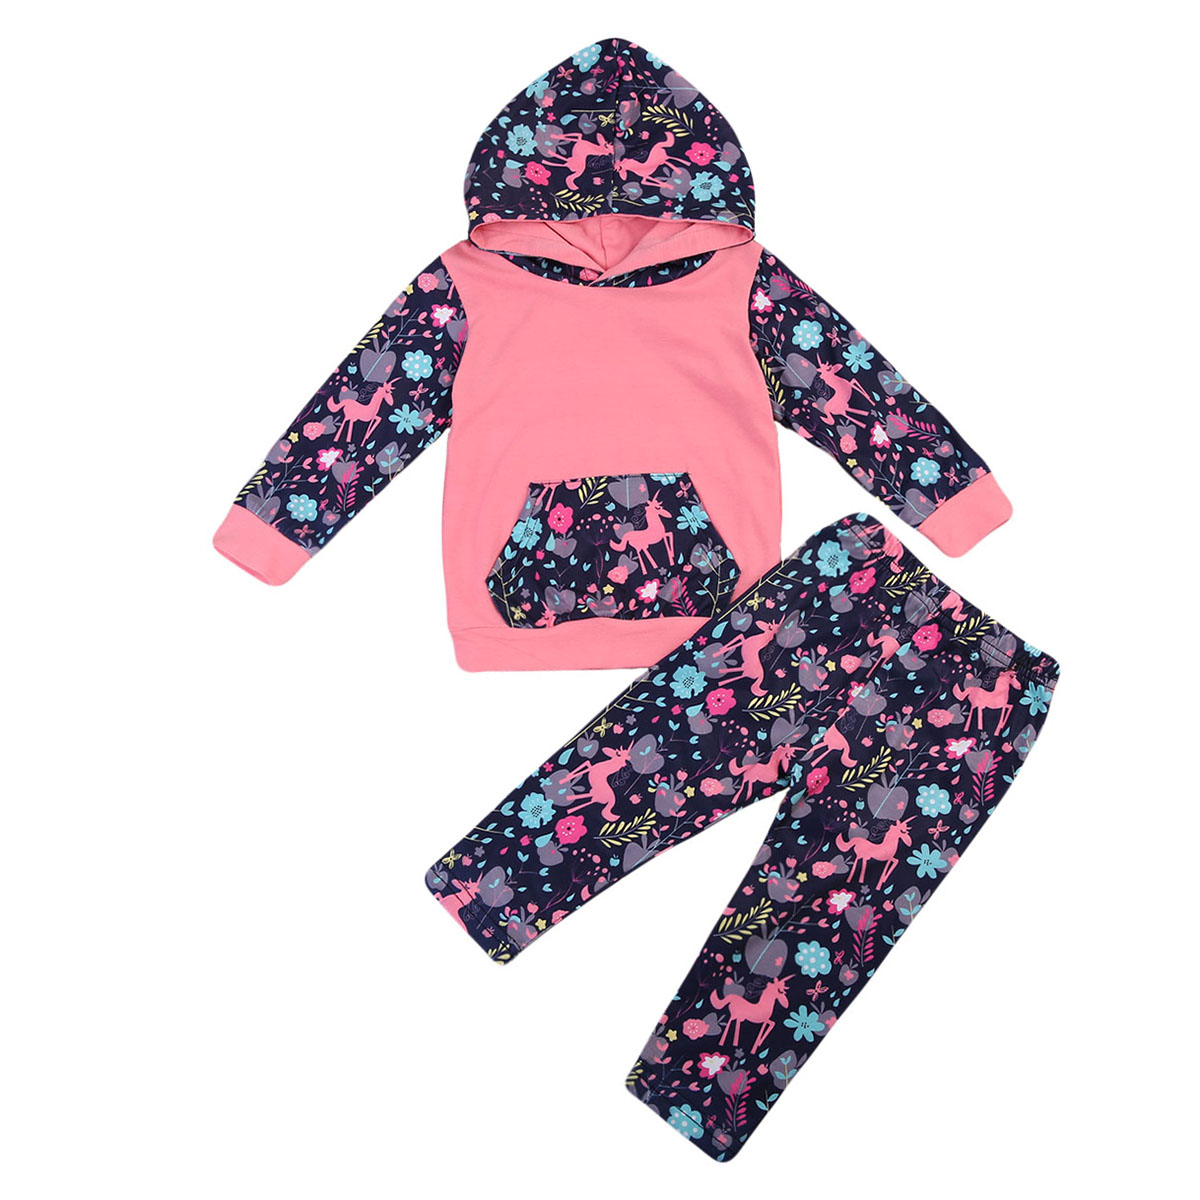 Baby Girl Long Sleeve T-shirt Tops Hooded Flower Pants Casual Outfits Toddler Clothing Floral Baby Girls Clothes Sets girl off shoulder tops short sleeve denim pants jeans headbands 3pcs outfits set clothing toddler girls kids clothes sets